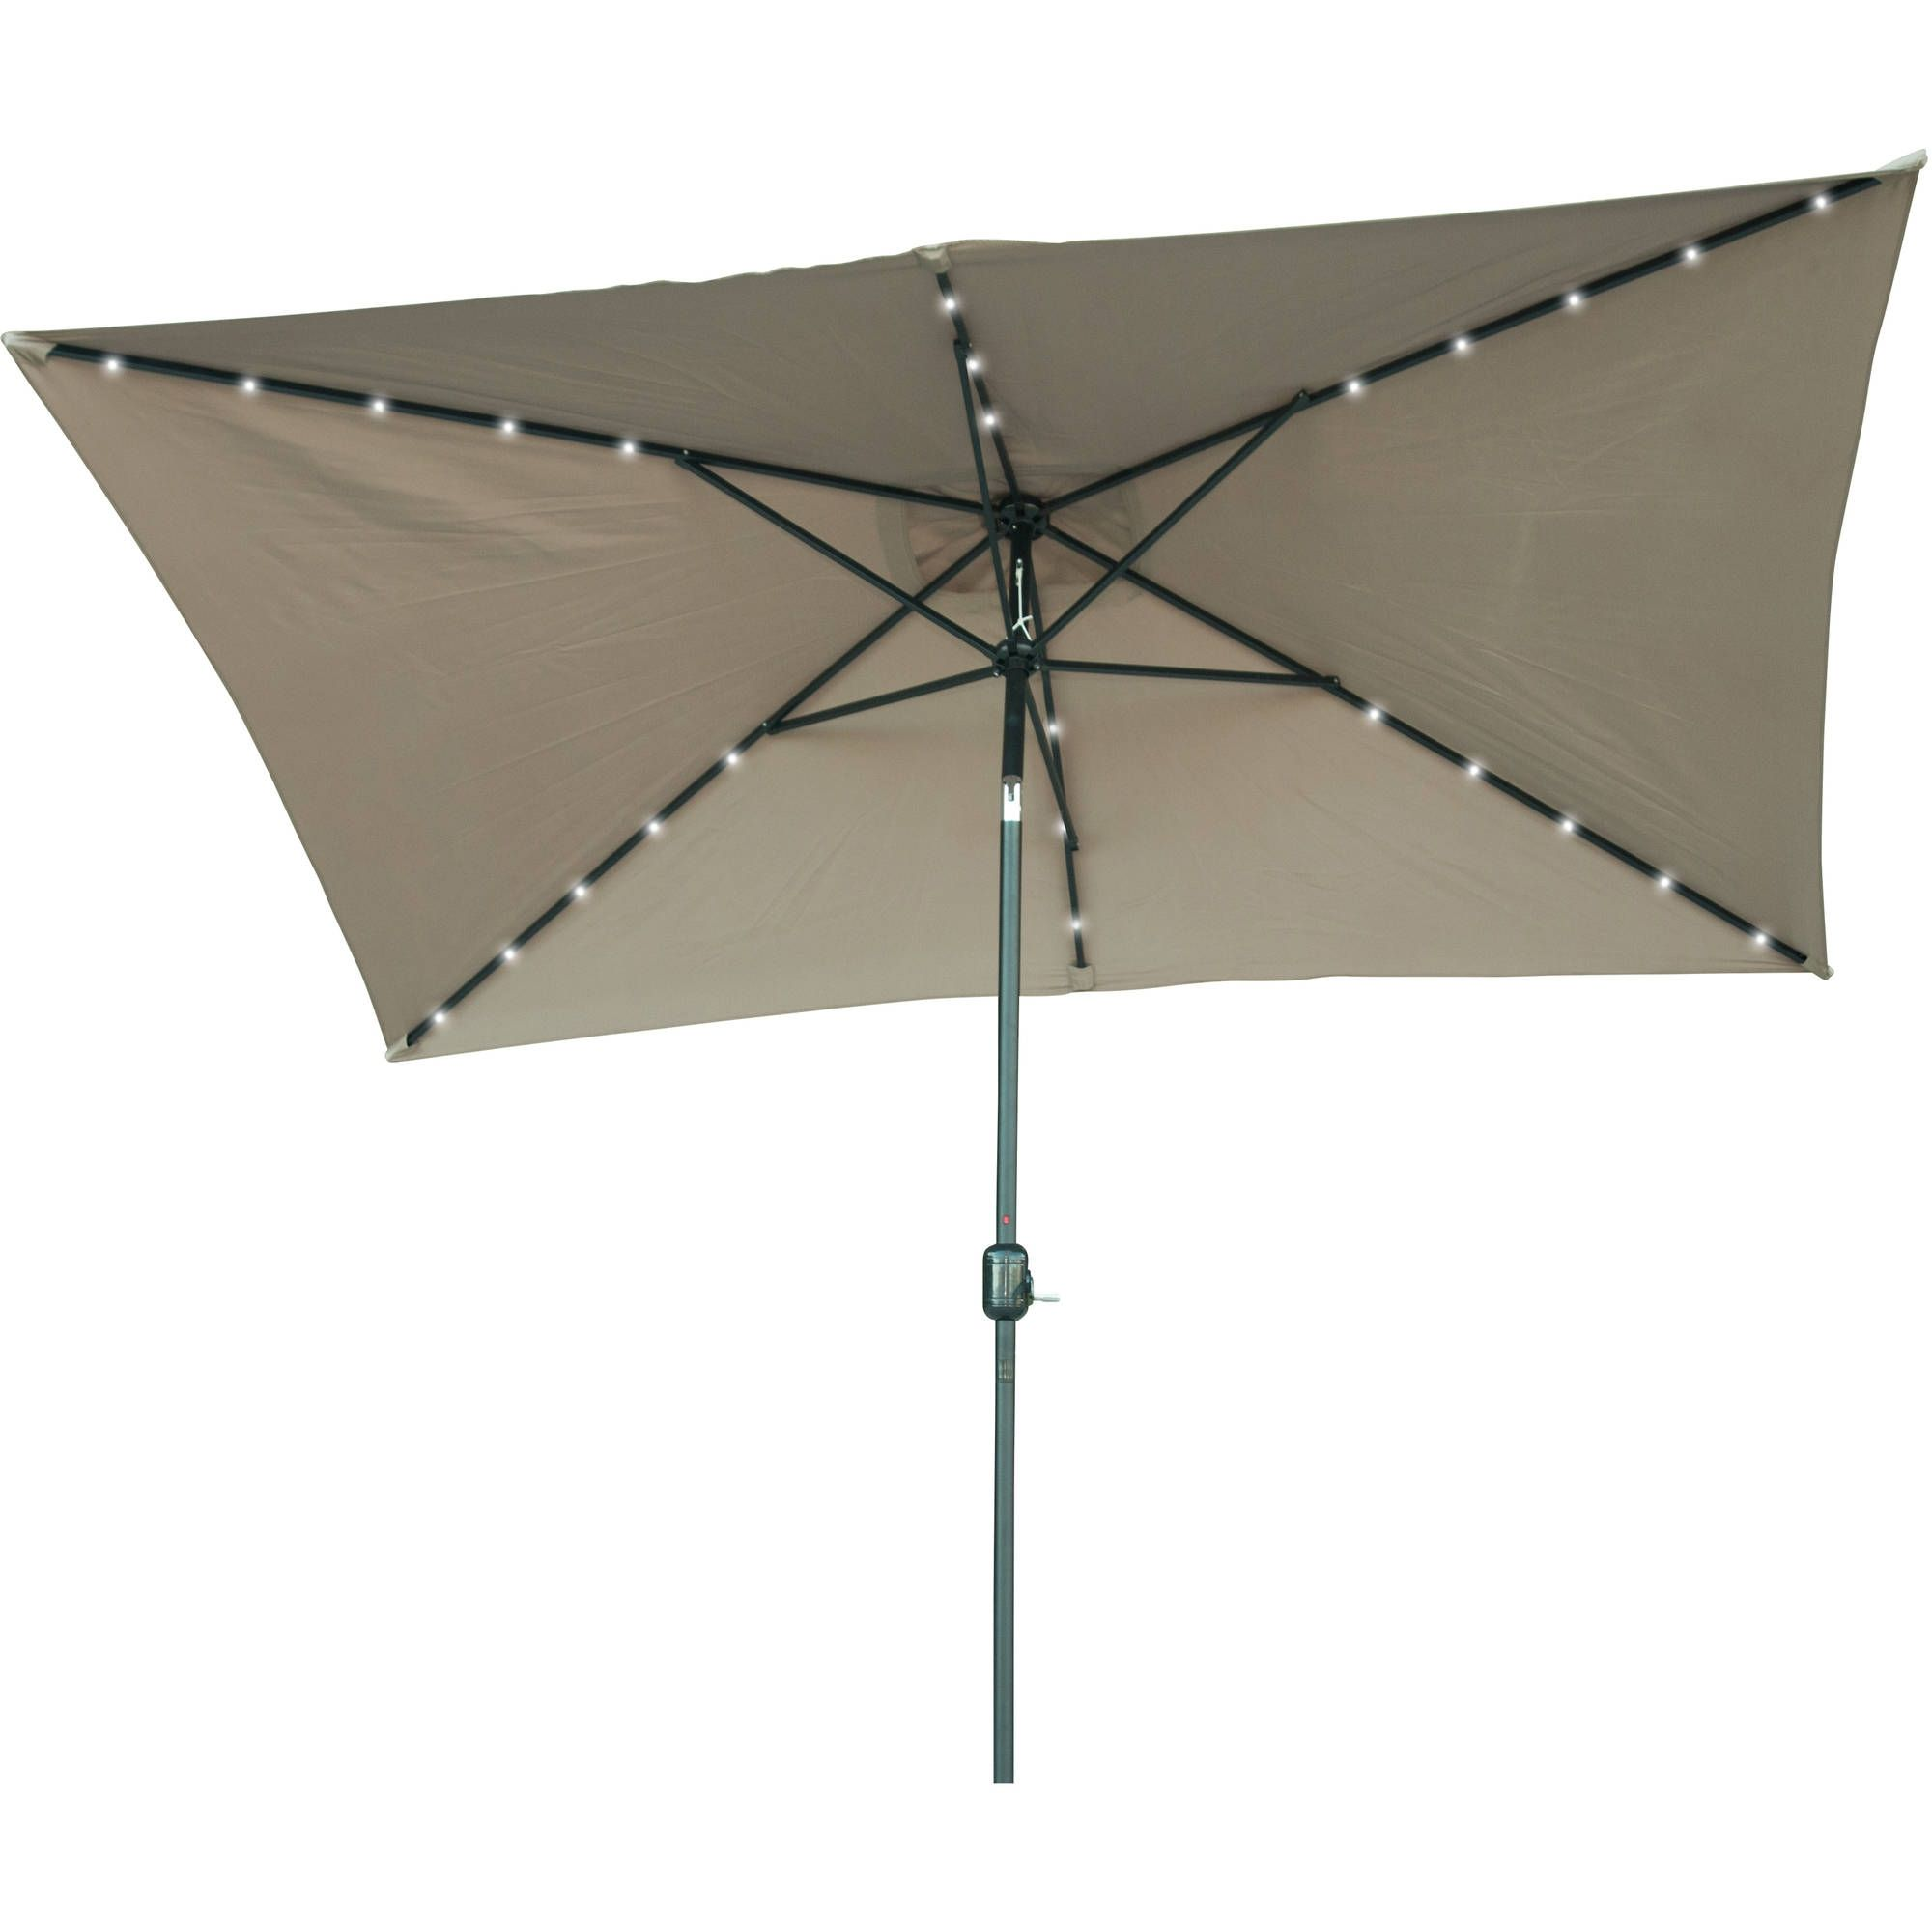 Solar Lights For Patio Umbrellas Classy Rectangular Patio Umbrella With Solar Lights  Patio Decor Decorating Inspiration